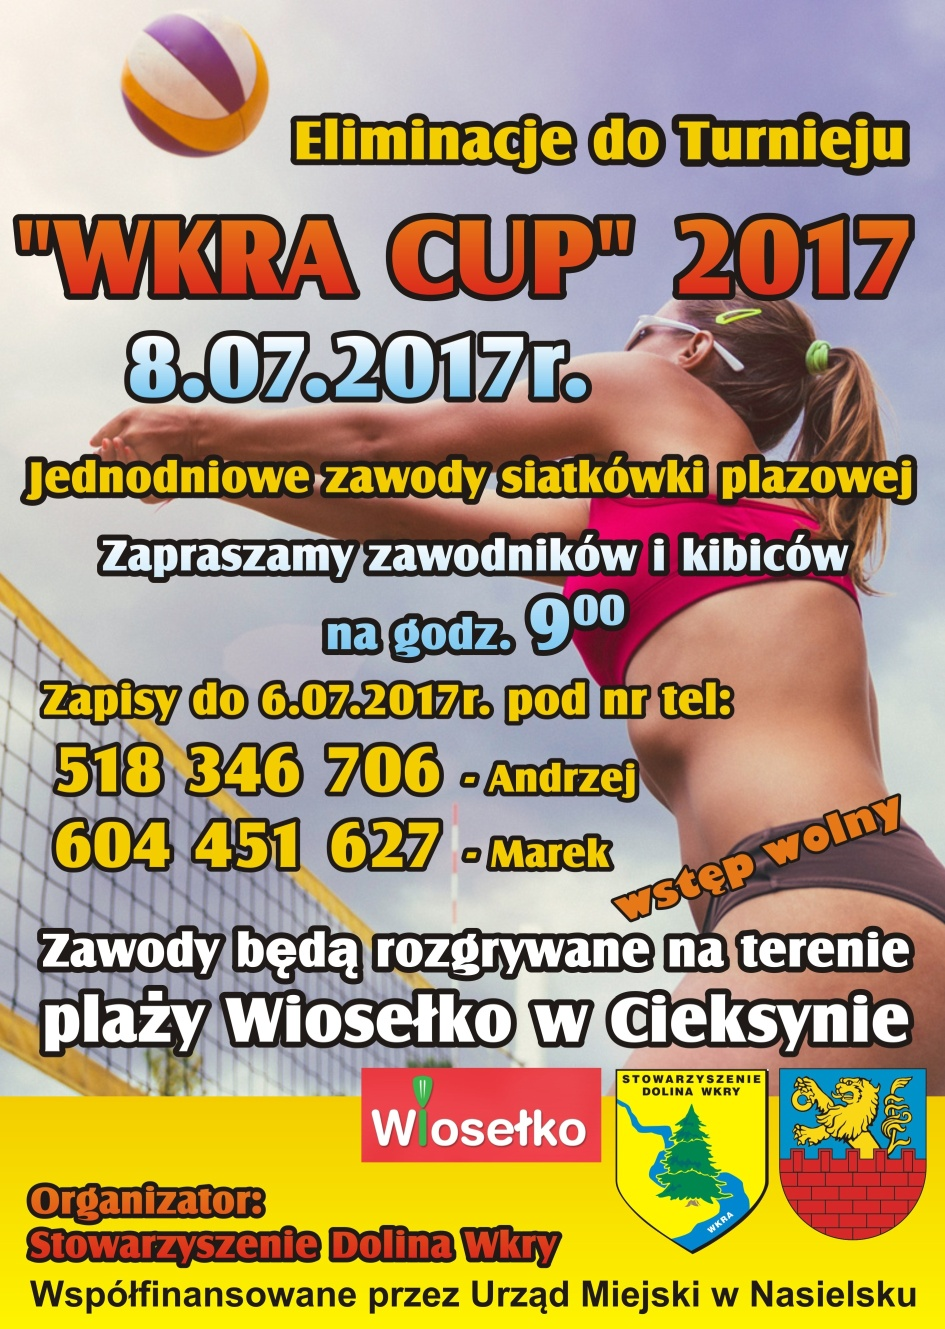 WKRA CUP 2017